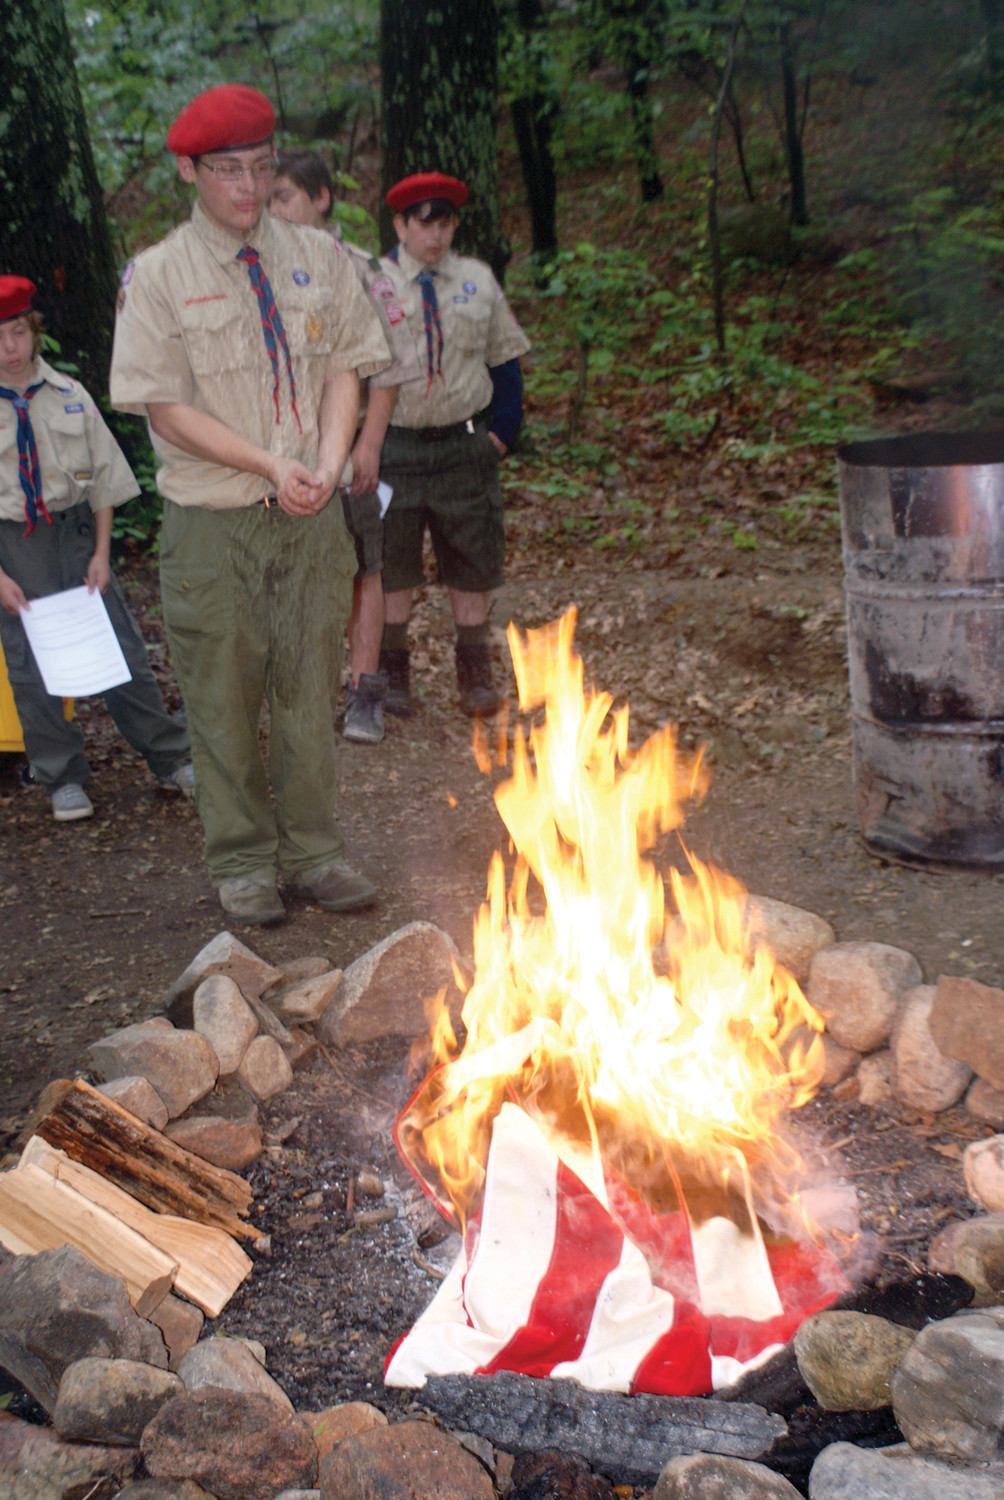 THE EAGLE PROJECT: On June 17, 2017 at 10 a.m., Nicholas Bombardier, of Troop 66 Garden City, completed his Eagle Project.  He held a Flag Retirement ceremony at Camp Champlin in Cranston. After a U.S. flag is retired in a ceremony they are then burned as custom.